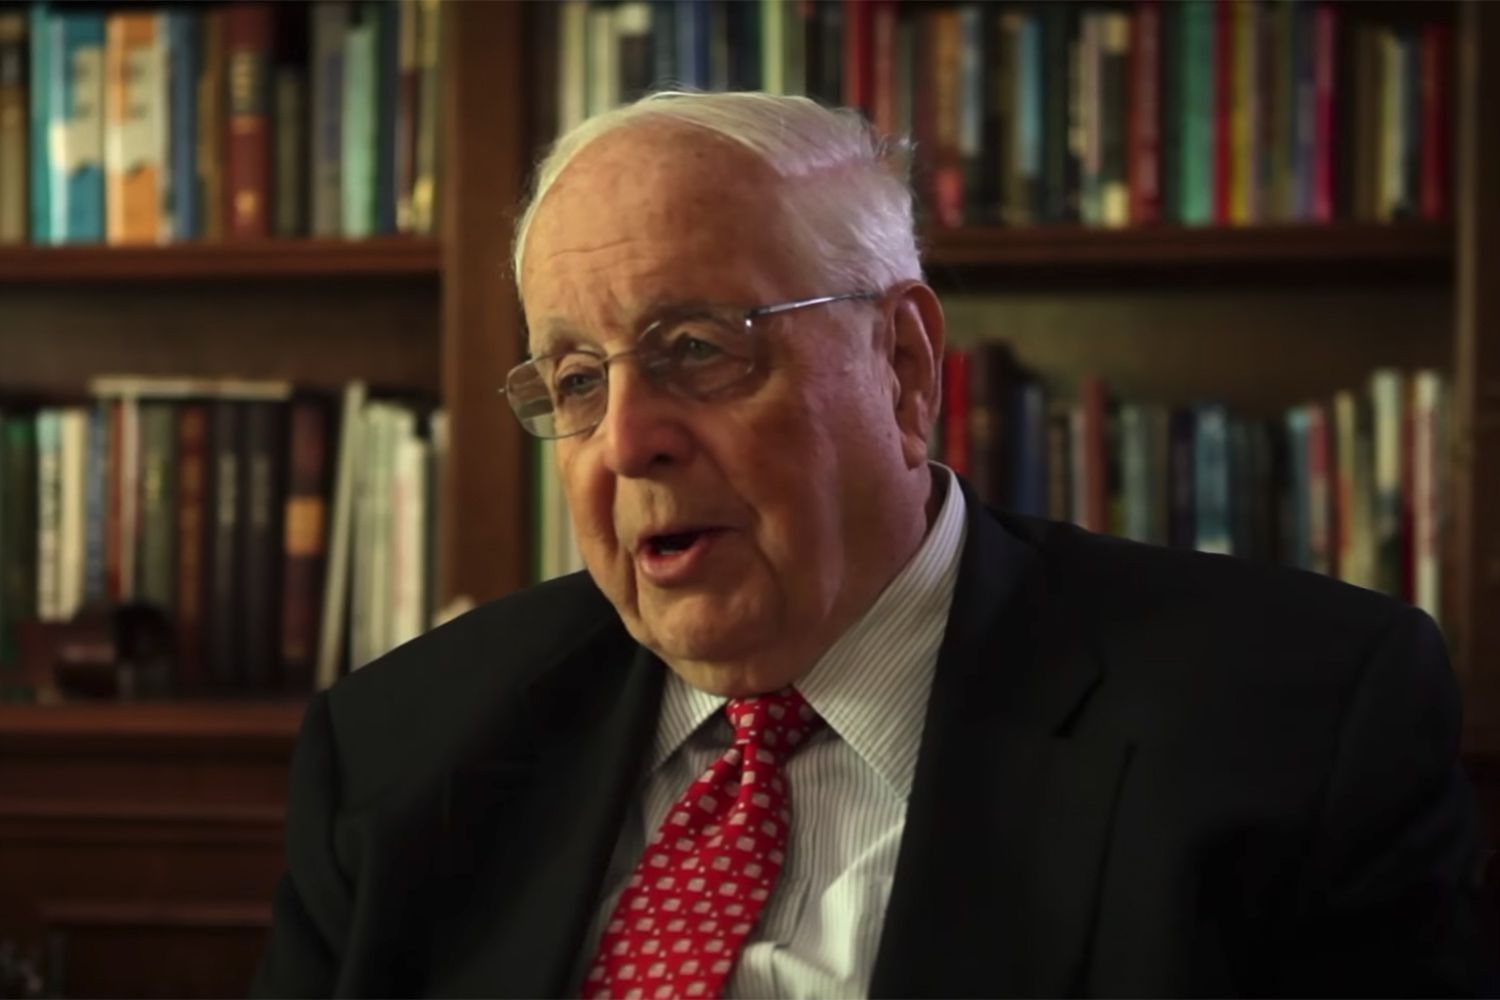 Paul Pressler, retired justice of the Texas 14th Circuit Court of Appeals.